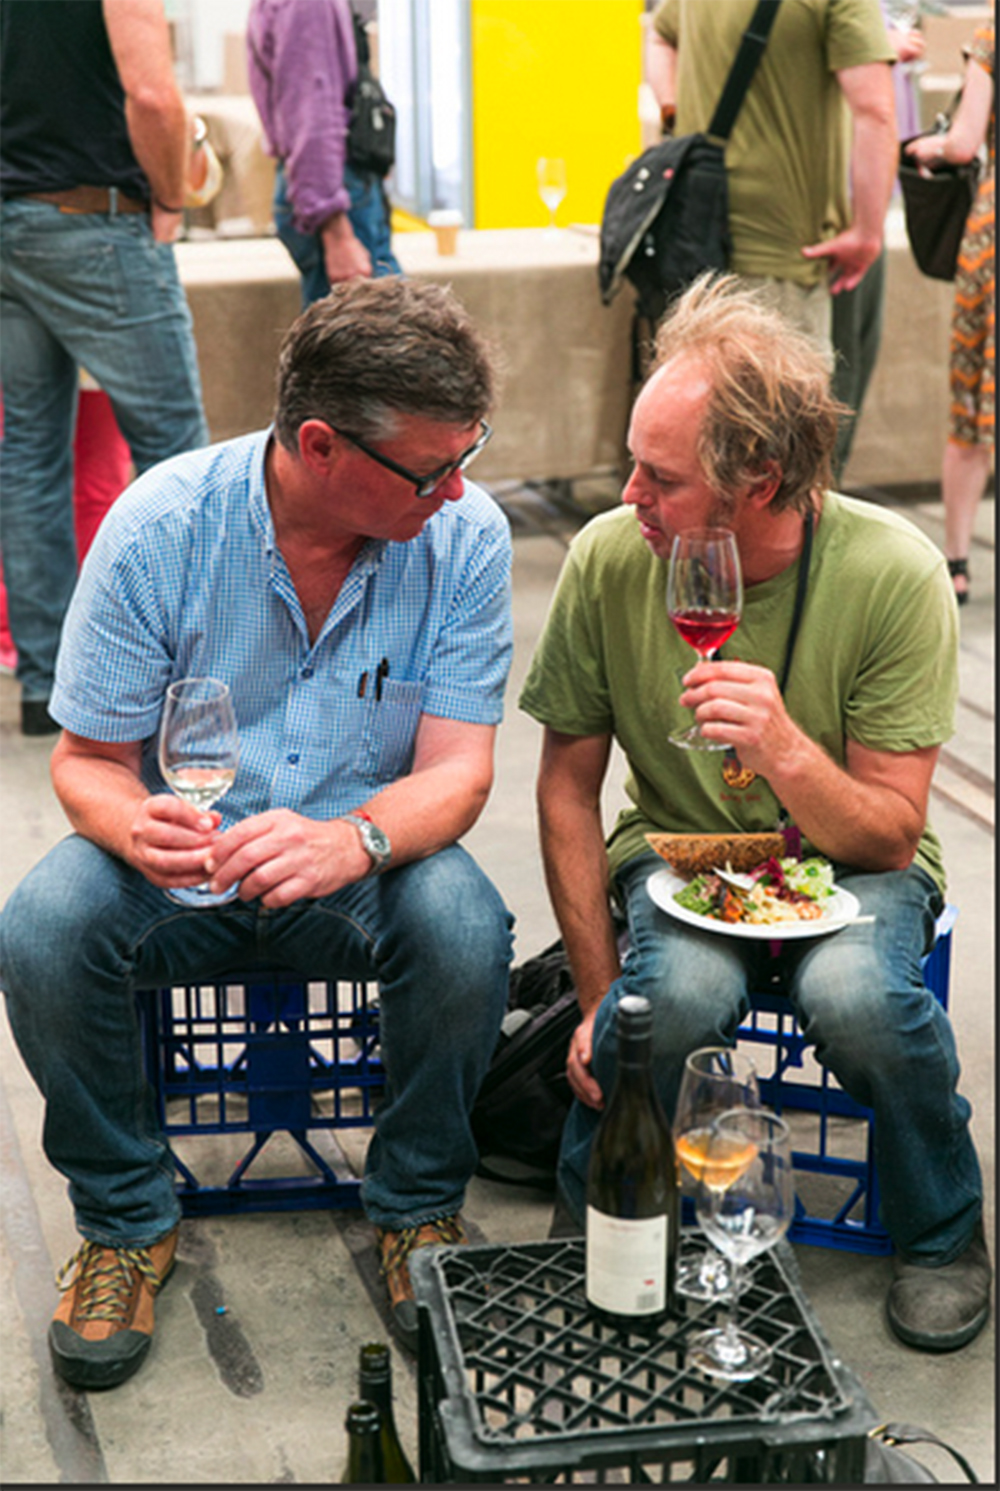 RootStock: natural wine pairing for local food movement